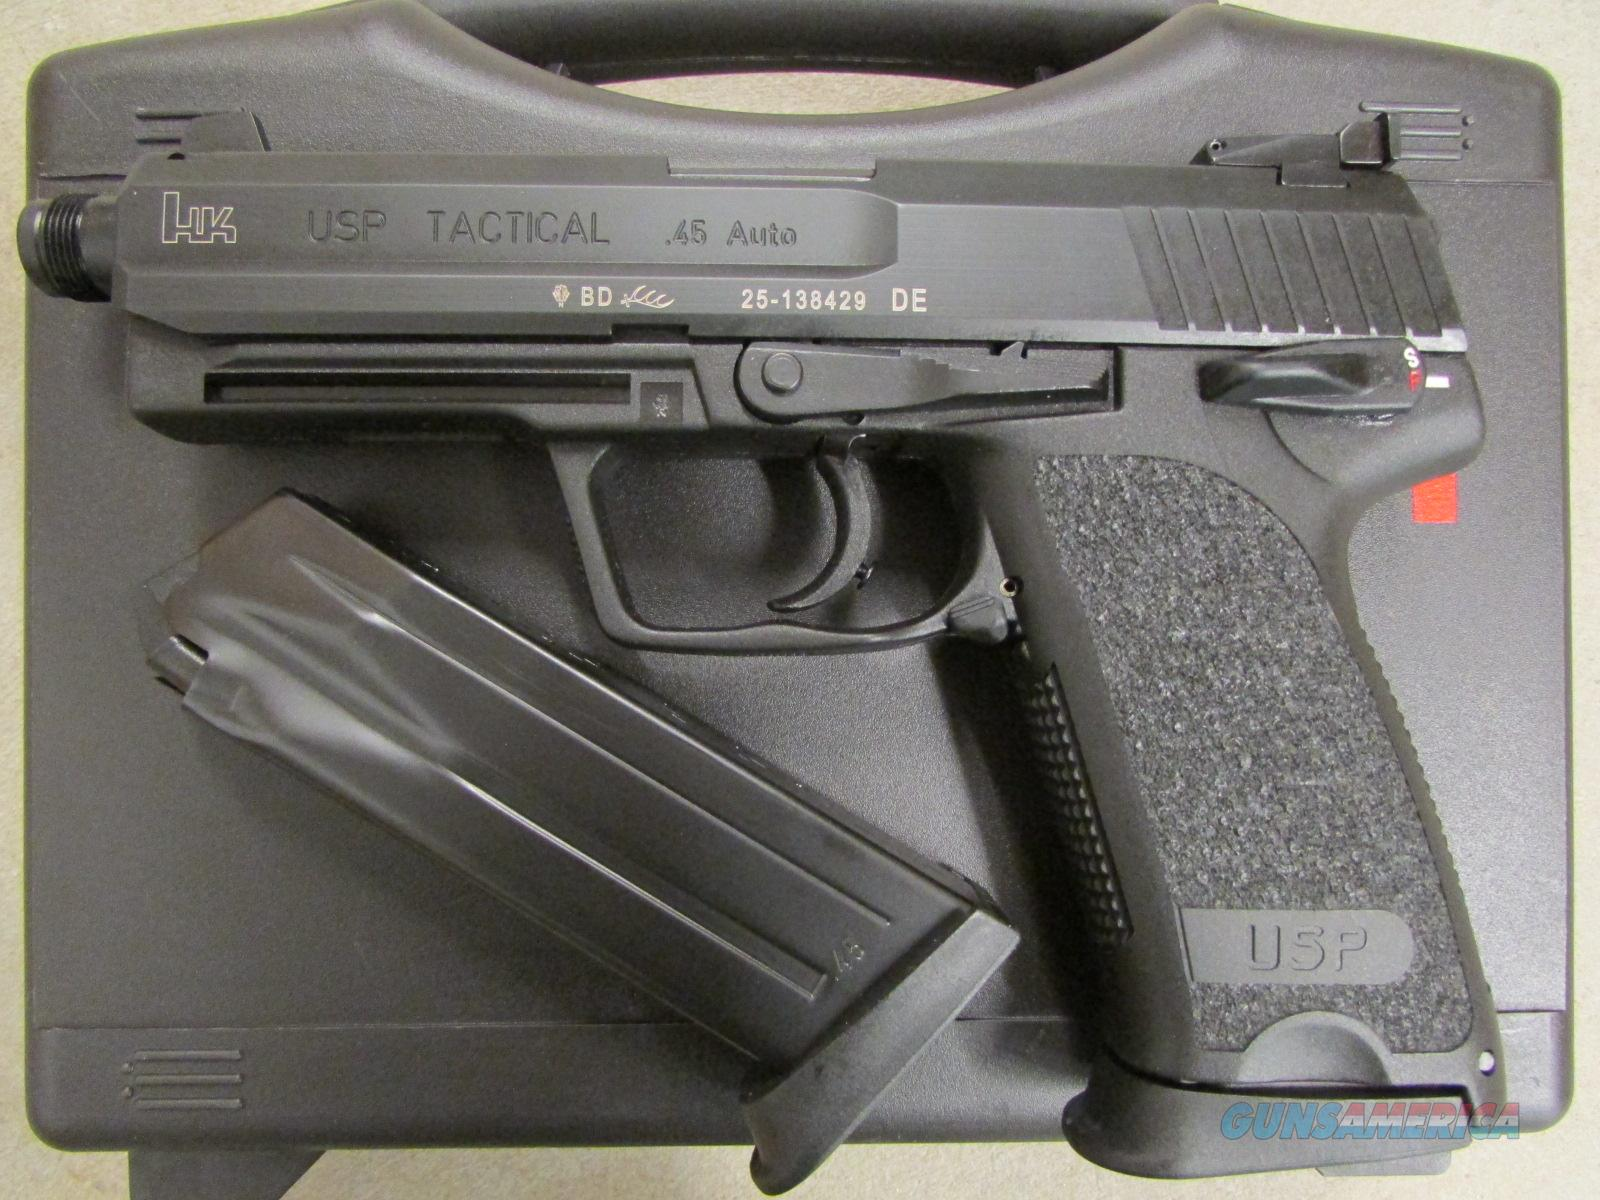 Heckler & Koch USP Tactical .45 ACP Threaded Barrel  Guns > Pistols > Heckler & Koch Pistols > Polymer Frame